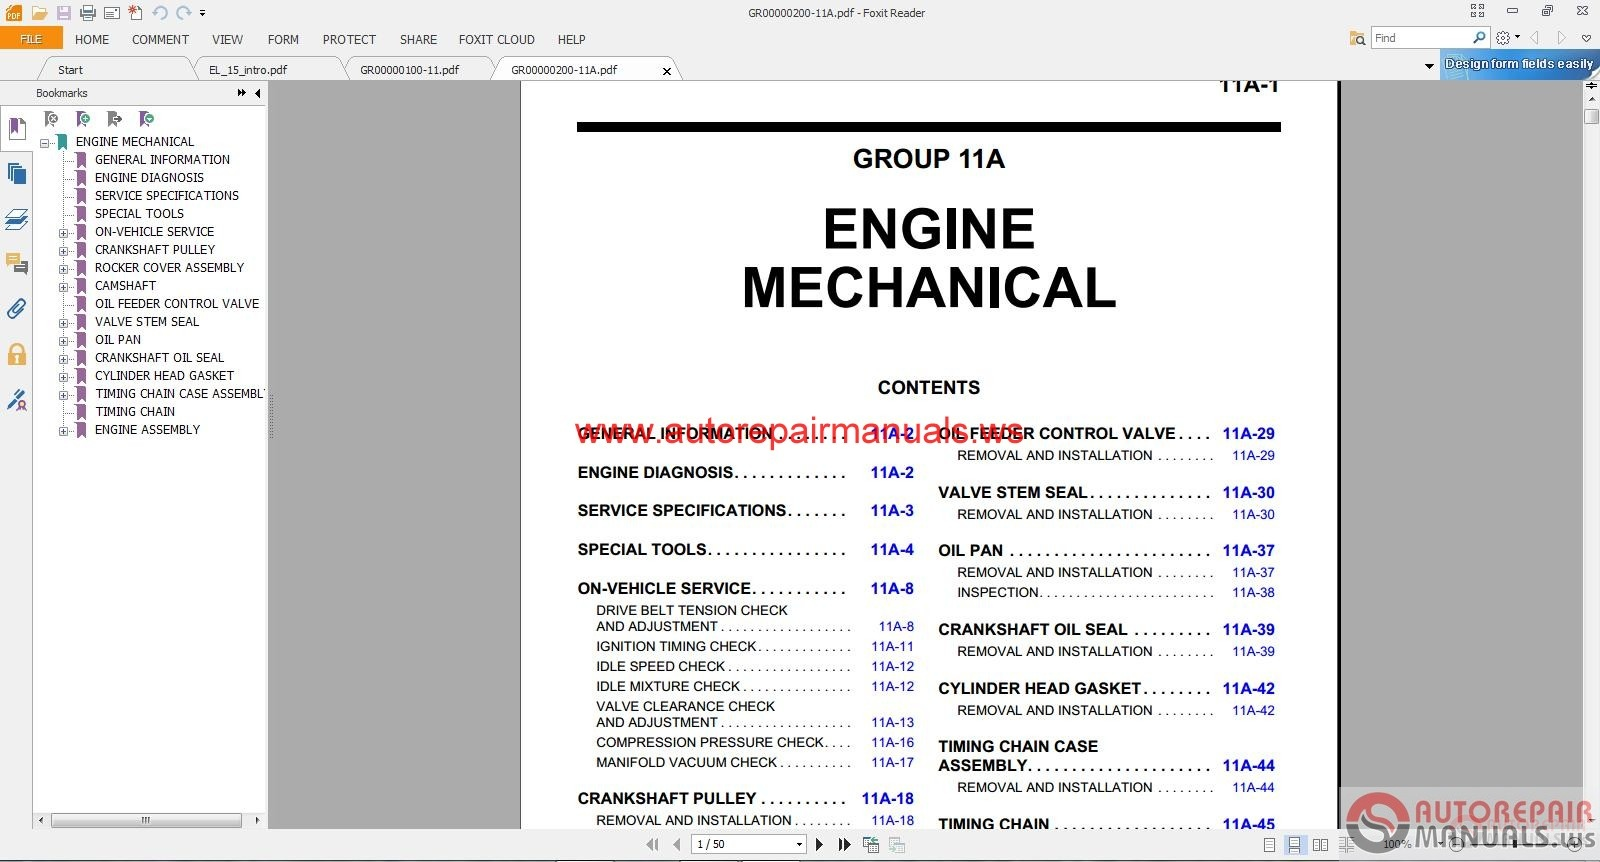 Mitsubishi_Mirage_2015_Workshop_Manual3 mitsubishi mirage 2015 workshop manual auto repair manual forum mitsubishi delica l400 wiring diagrams download at alyssarenee.co